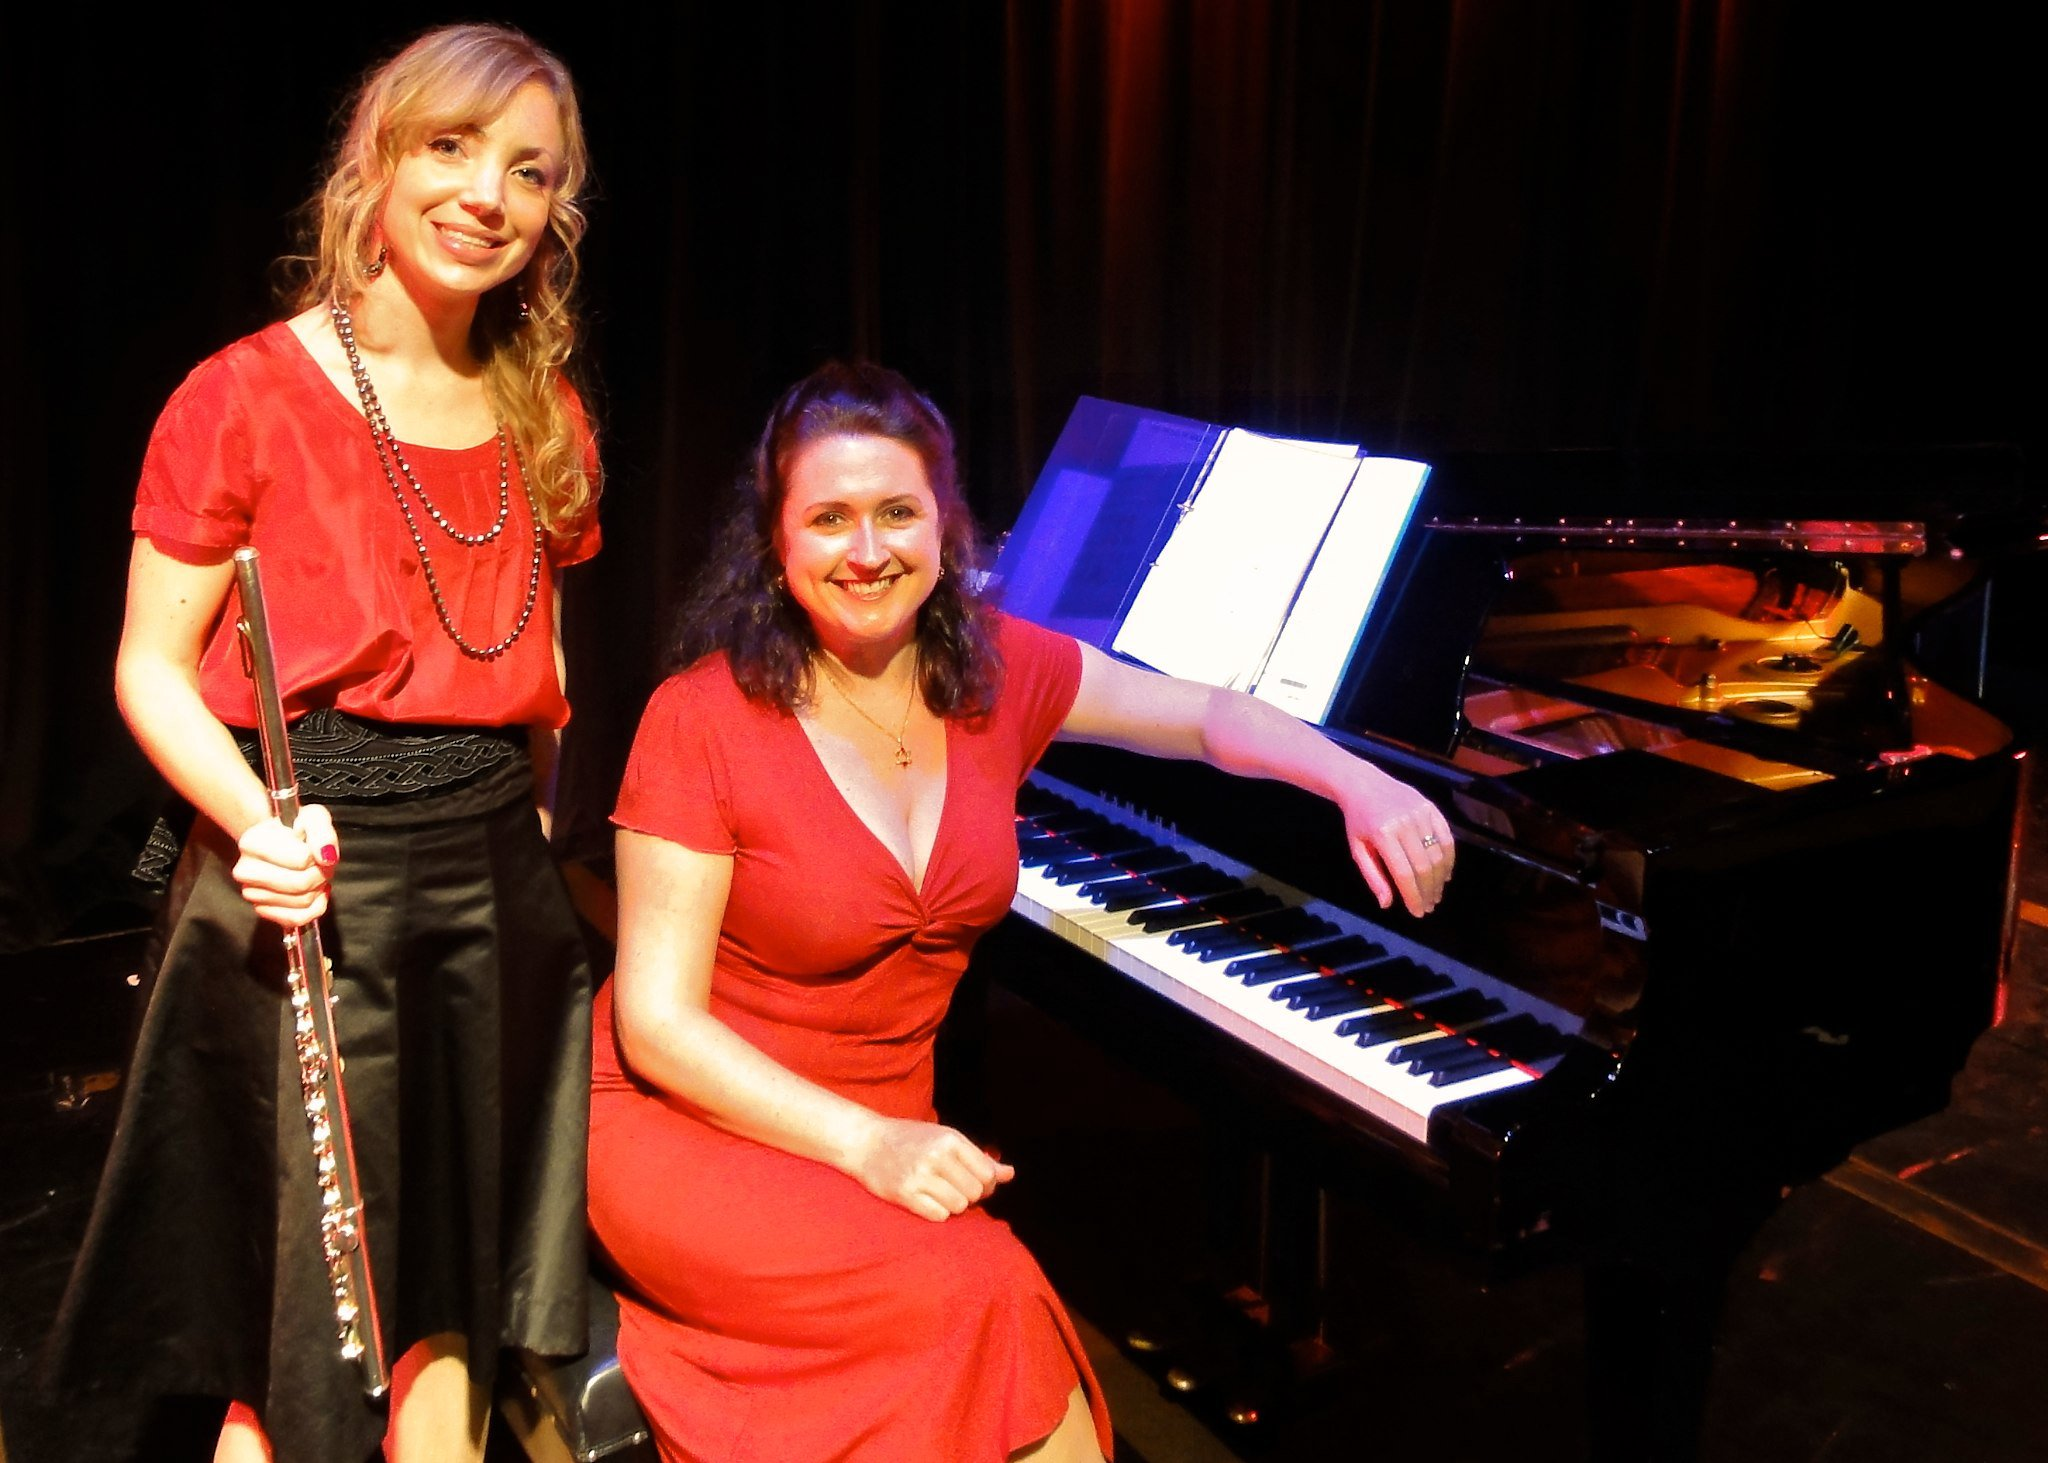 Recitals on the Oceana with Rosie Reed